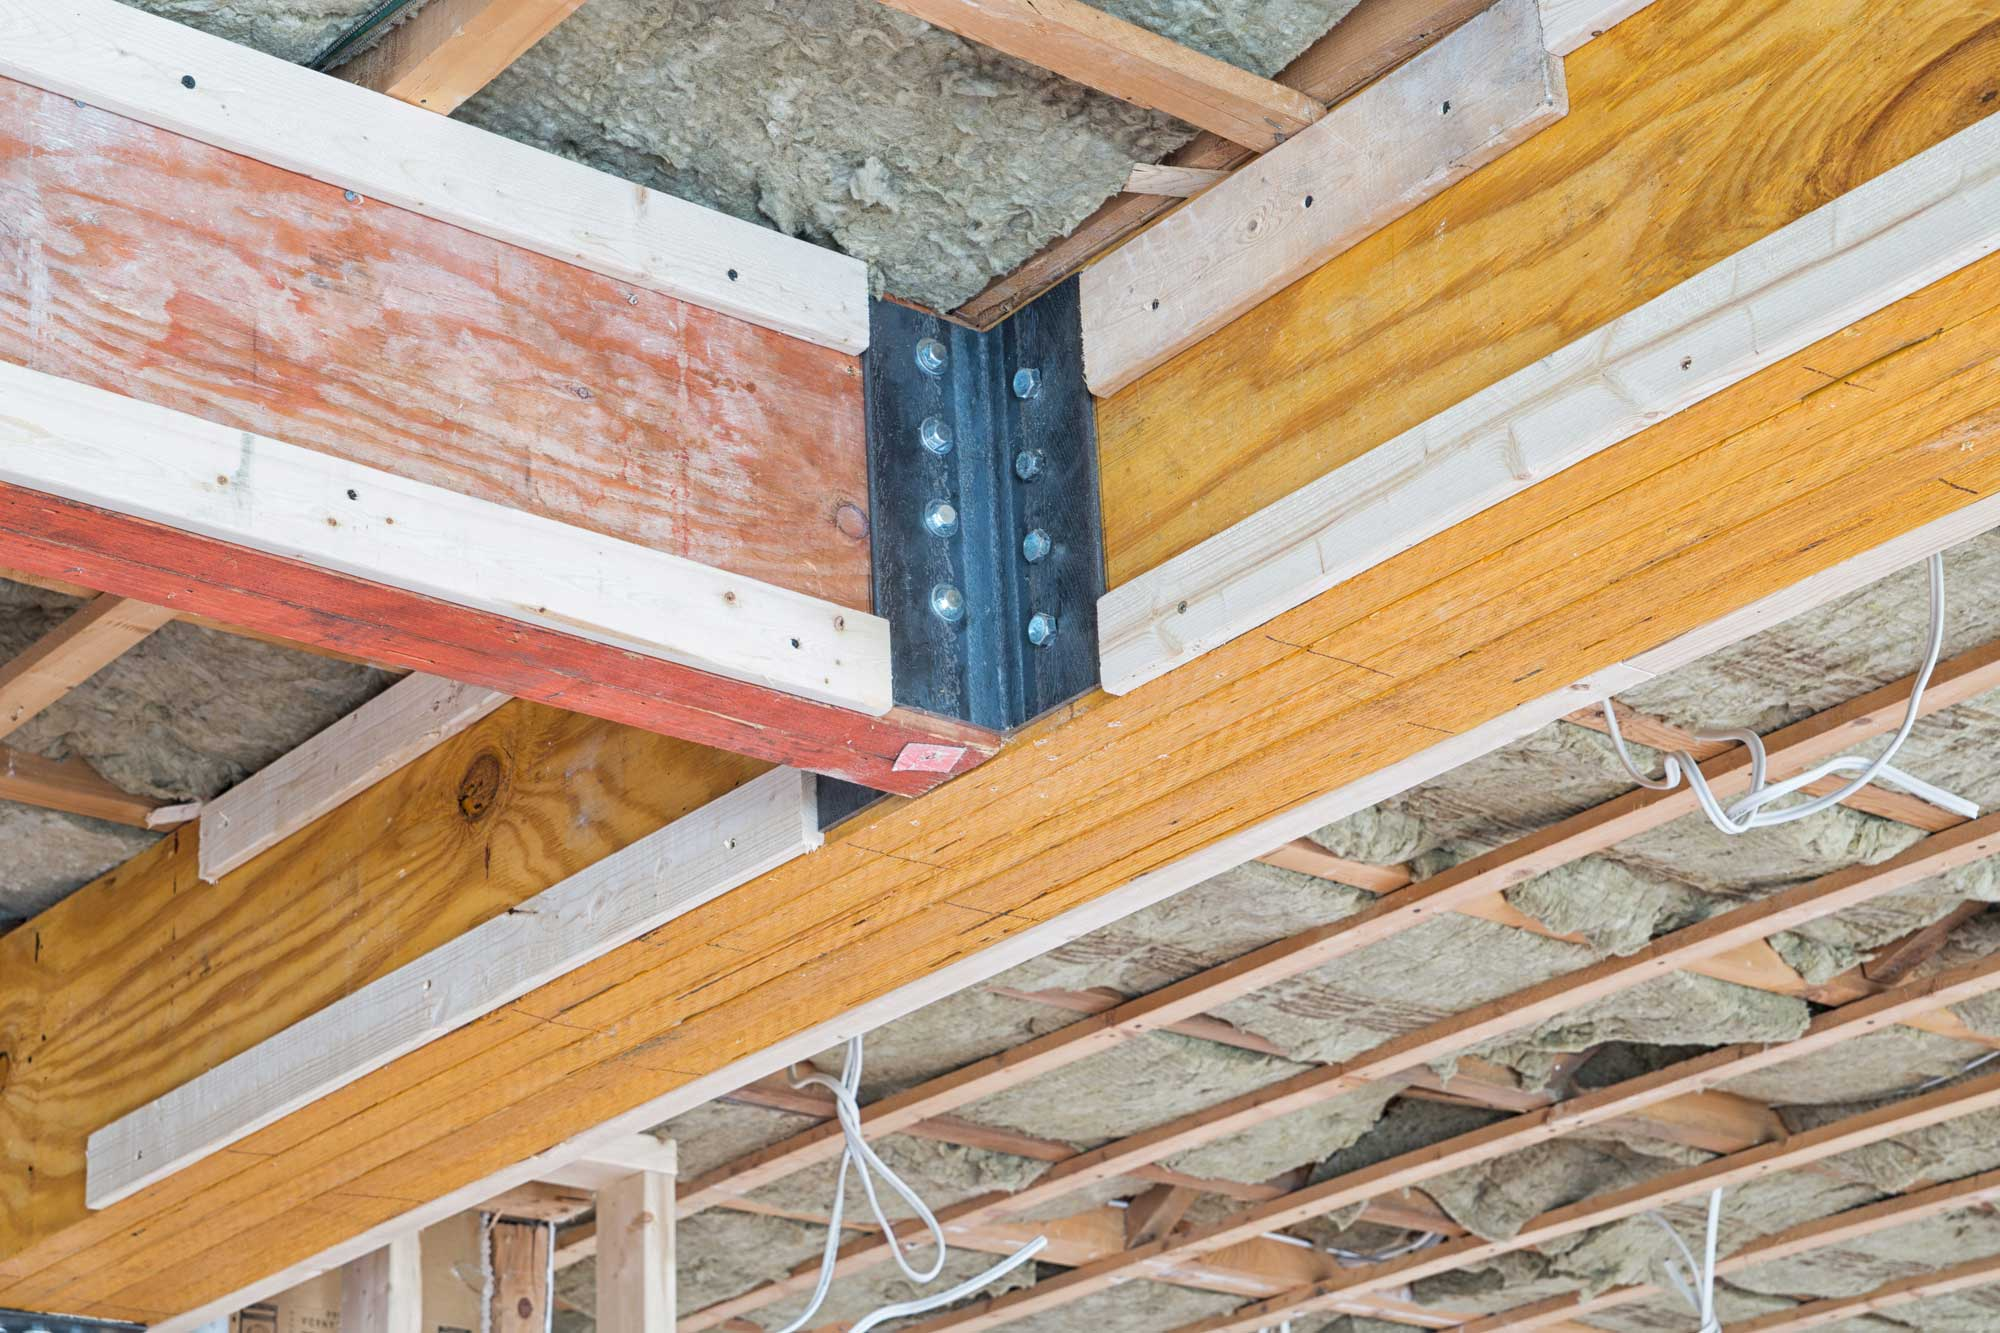 Wood Support Beams